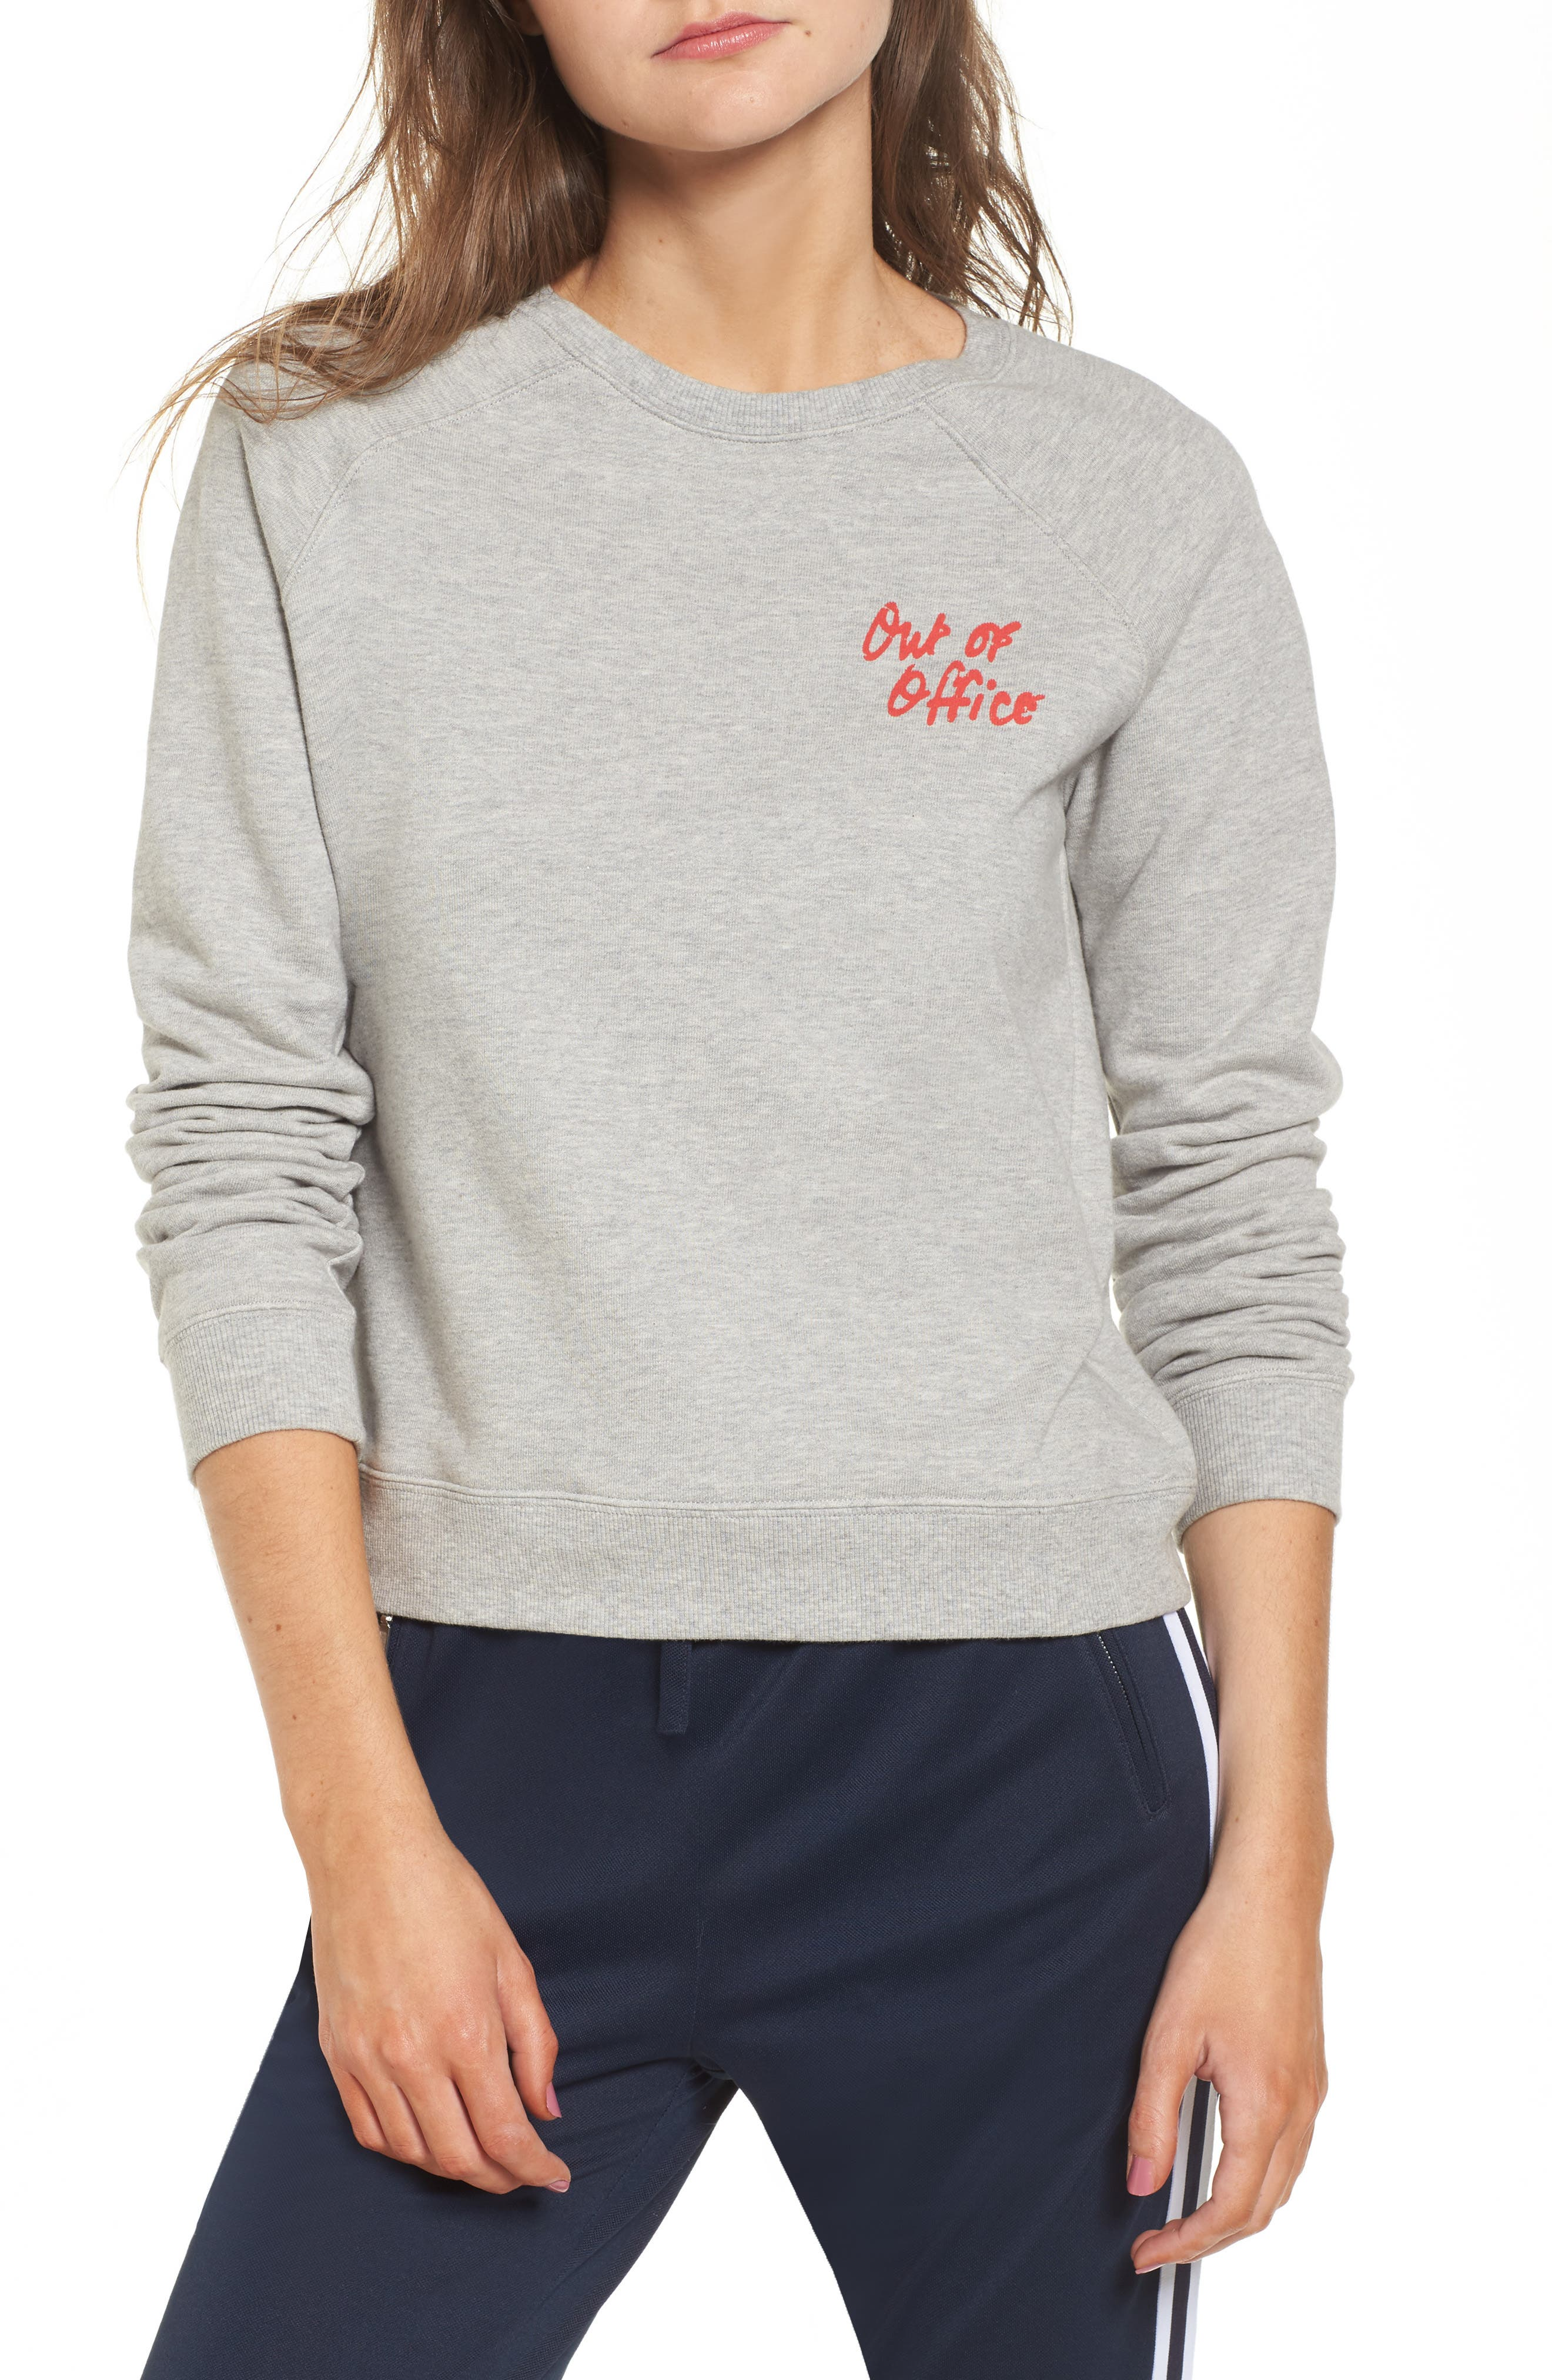 Out of Office Sweatshirt,                         Main,                         color, Heather Grey/ Red